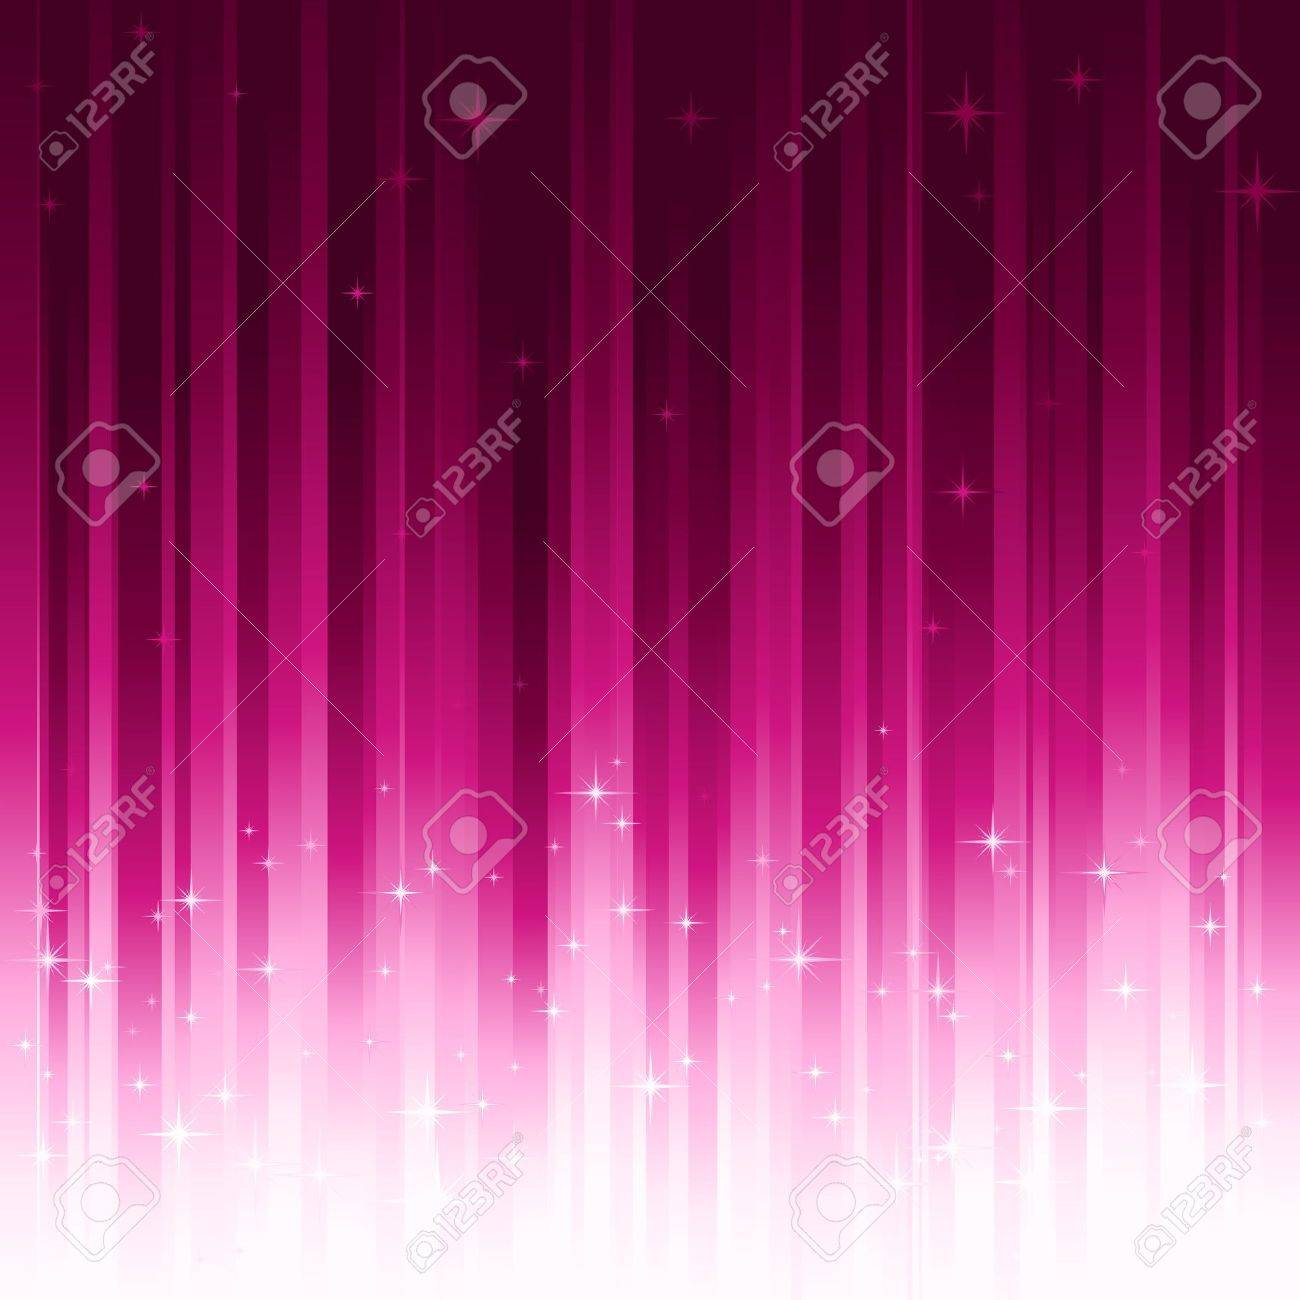 Background image o linear gradient - Purple Festive Background With Stars Stripes Controlled By 1 Linear Gradient Use Of 10